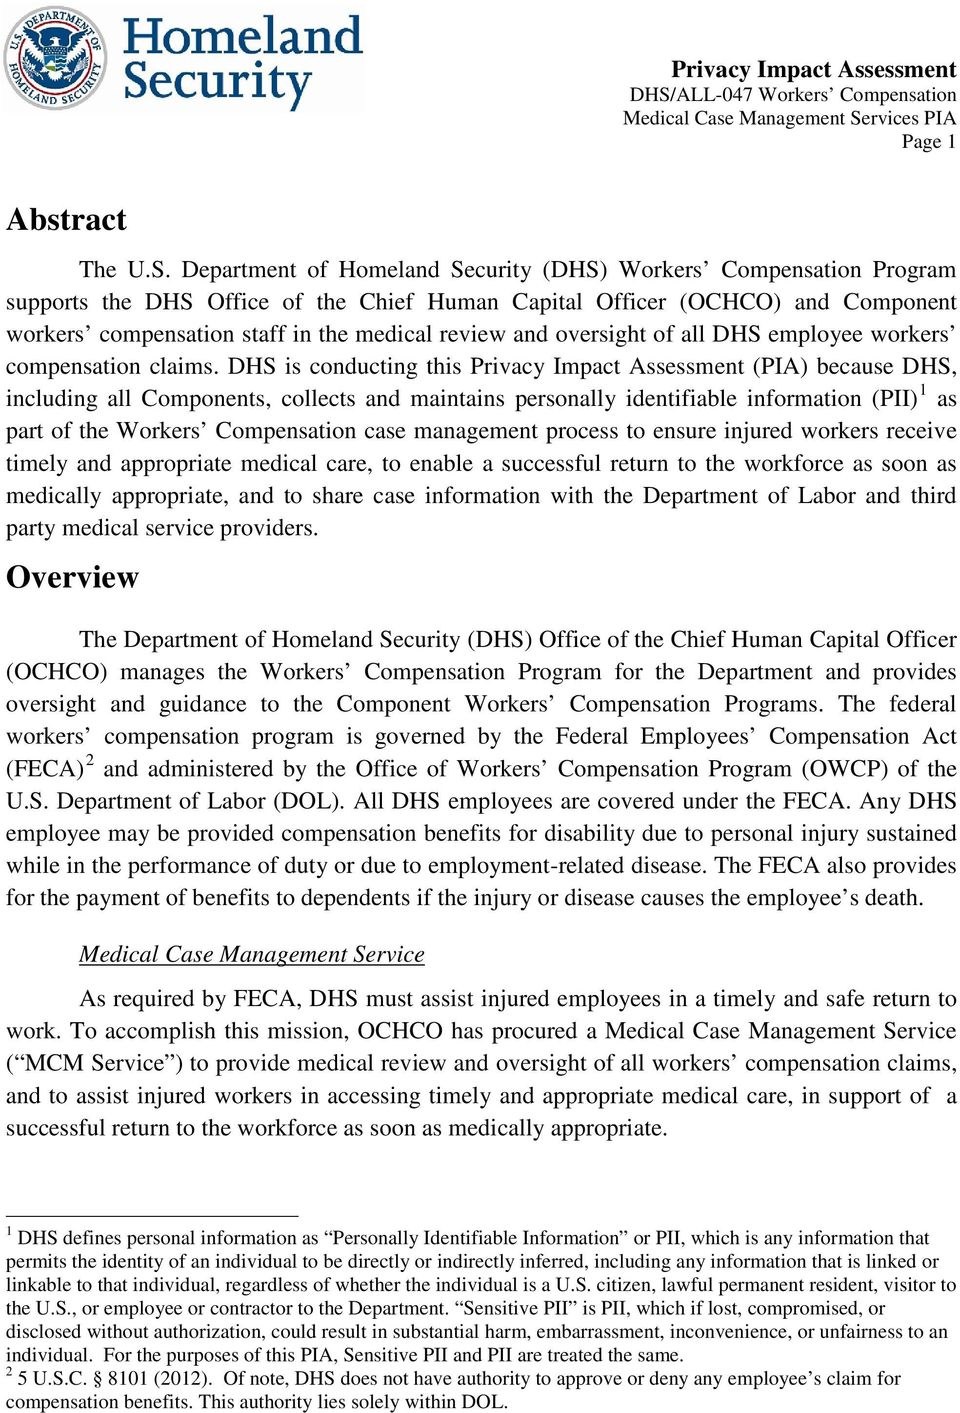 DHS is conducting this Privacy Impact Assessment (PIA) because DHS, including all Components, collects and maintains personally identifiable information (PII) 1 as part of the Workers Compensation